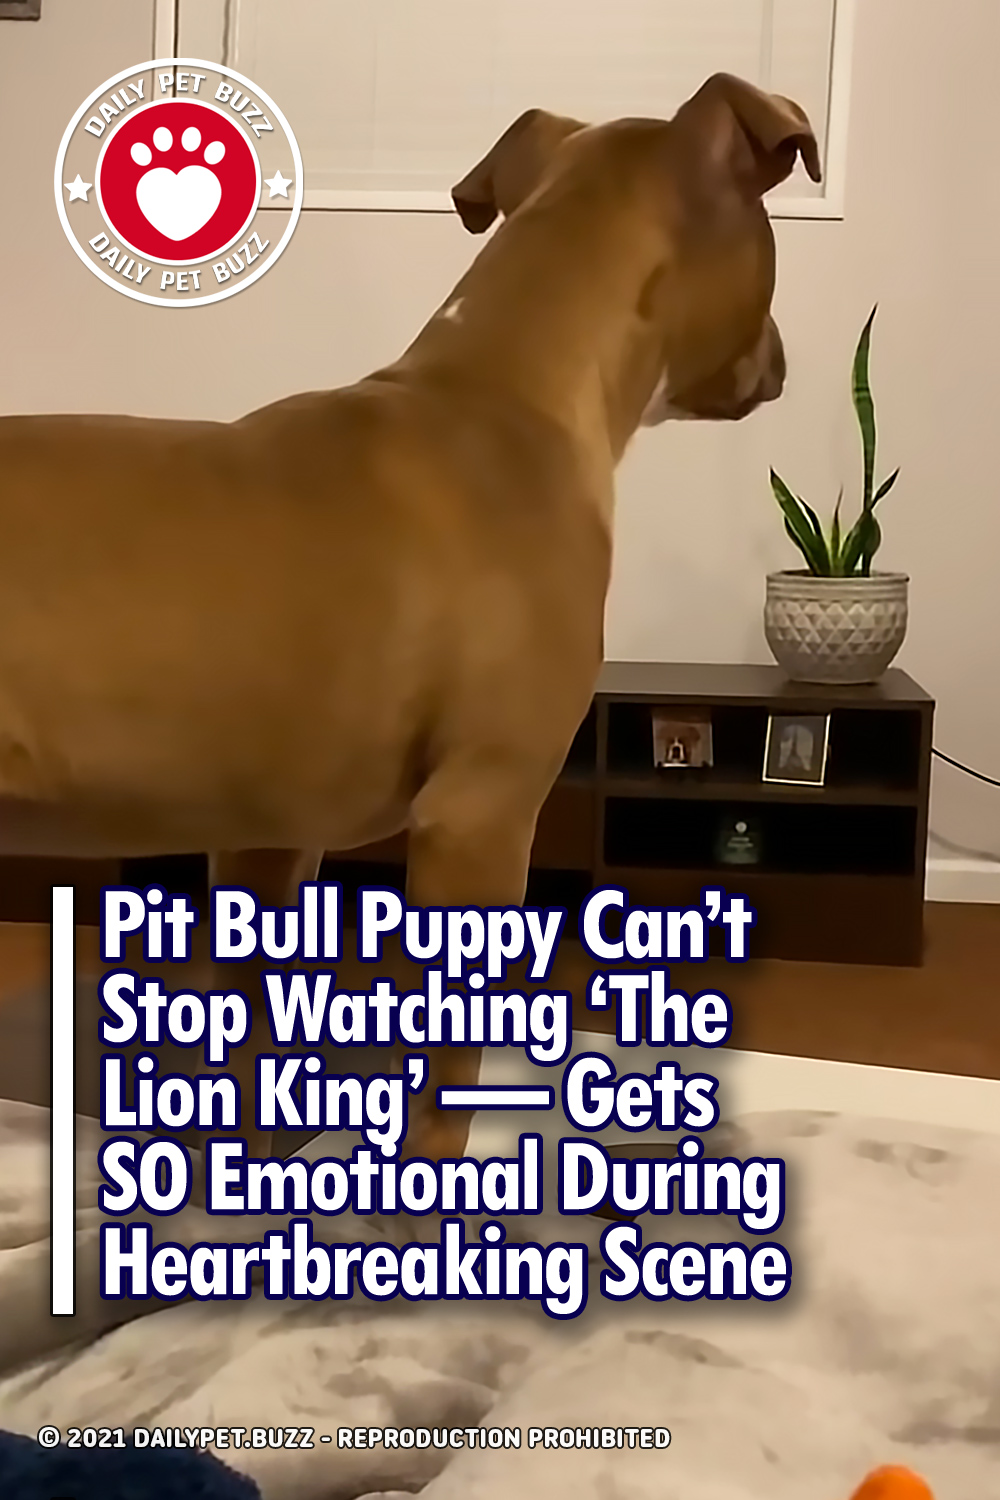 Pit Bull Puppy Can\'t Stop Watching 'The Lion King' — Gets SO Emotional During Heartbreaking Scene